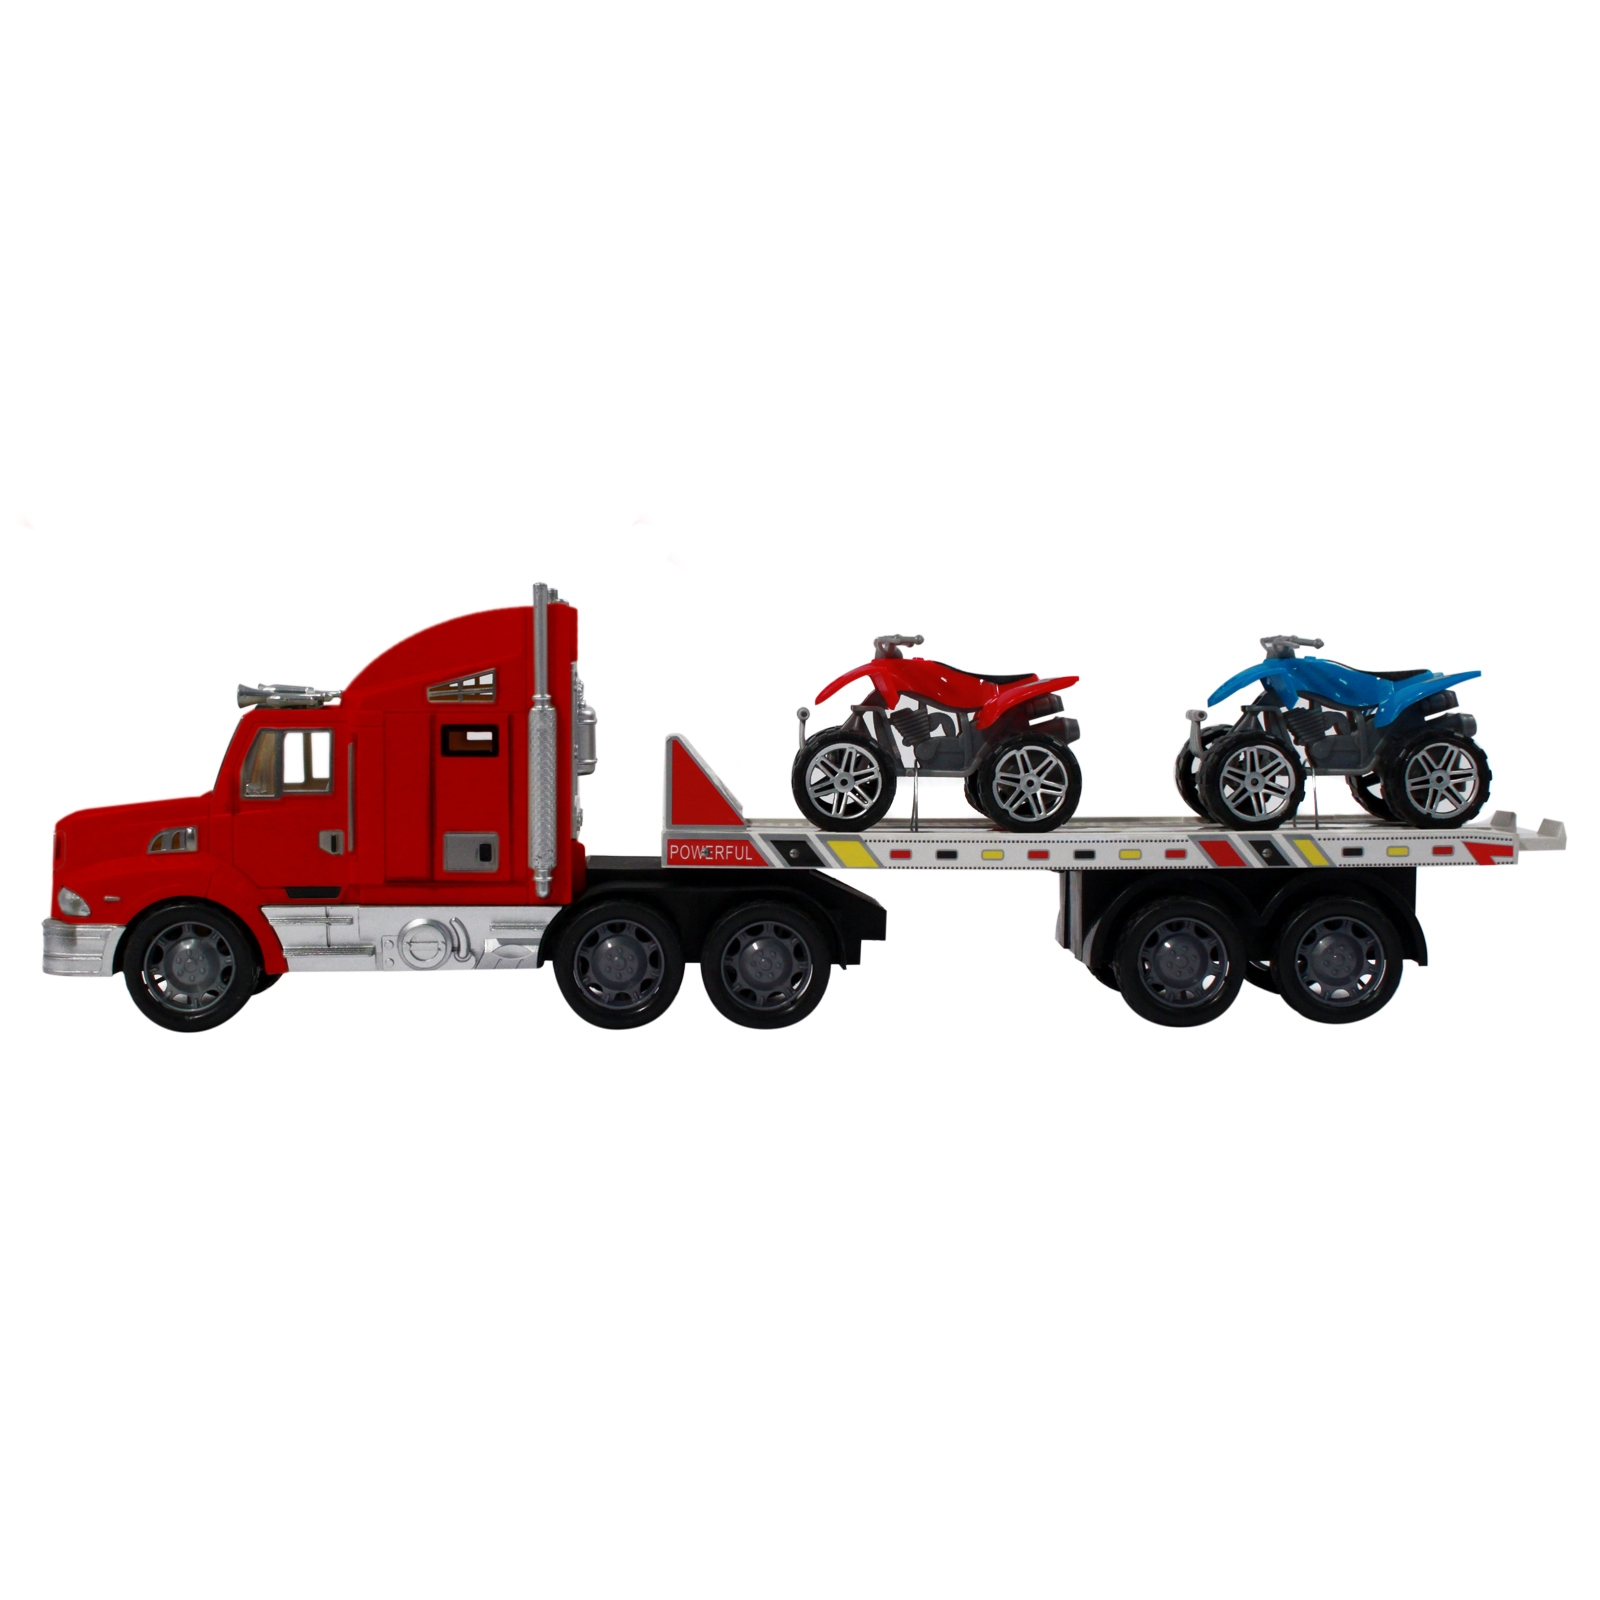 Toy Trucks For Boys : Toy auto transport truck for kids and boys with atvs